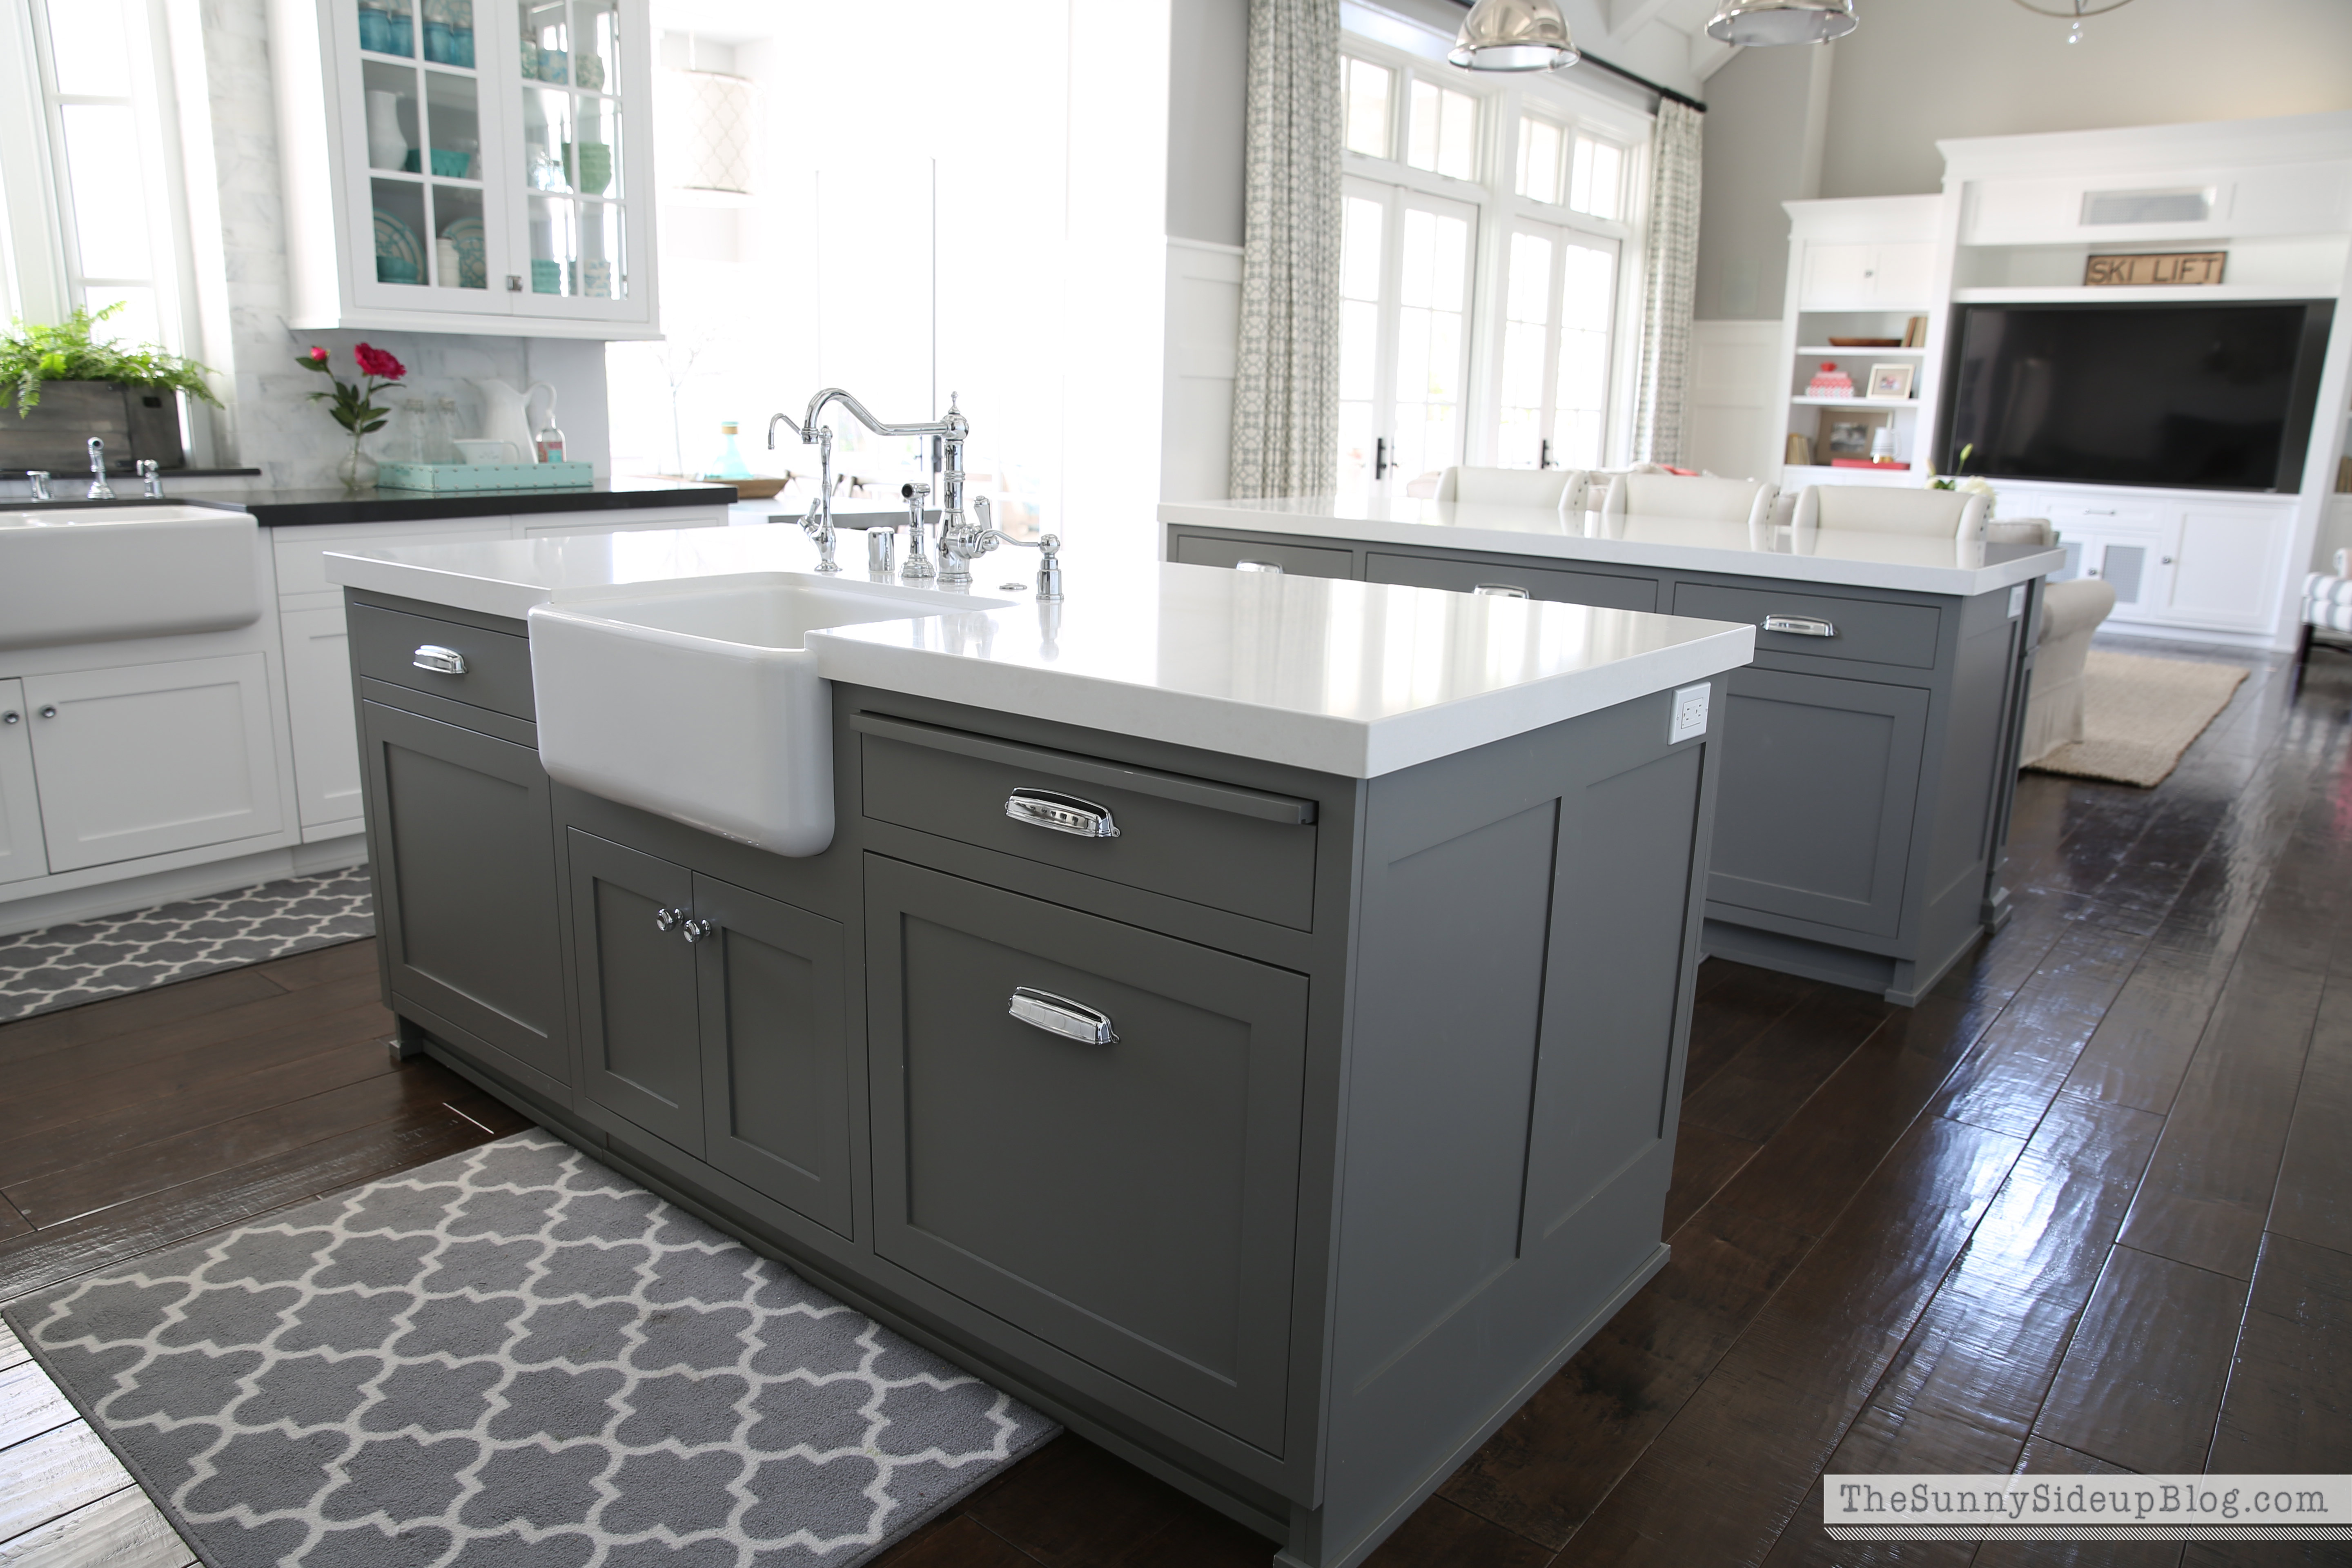 Sunny side up 2016 year review the sunny side up blog for Grey green paint color kitchen